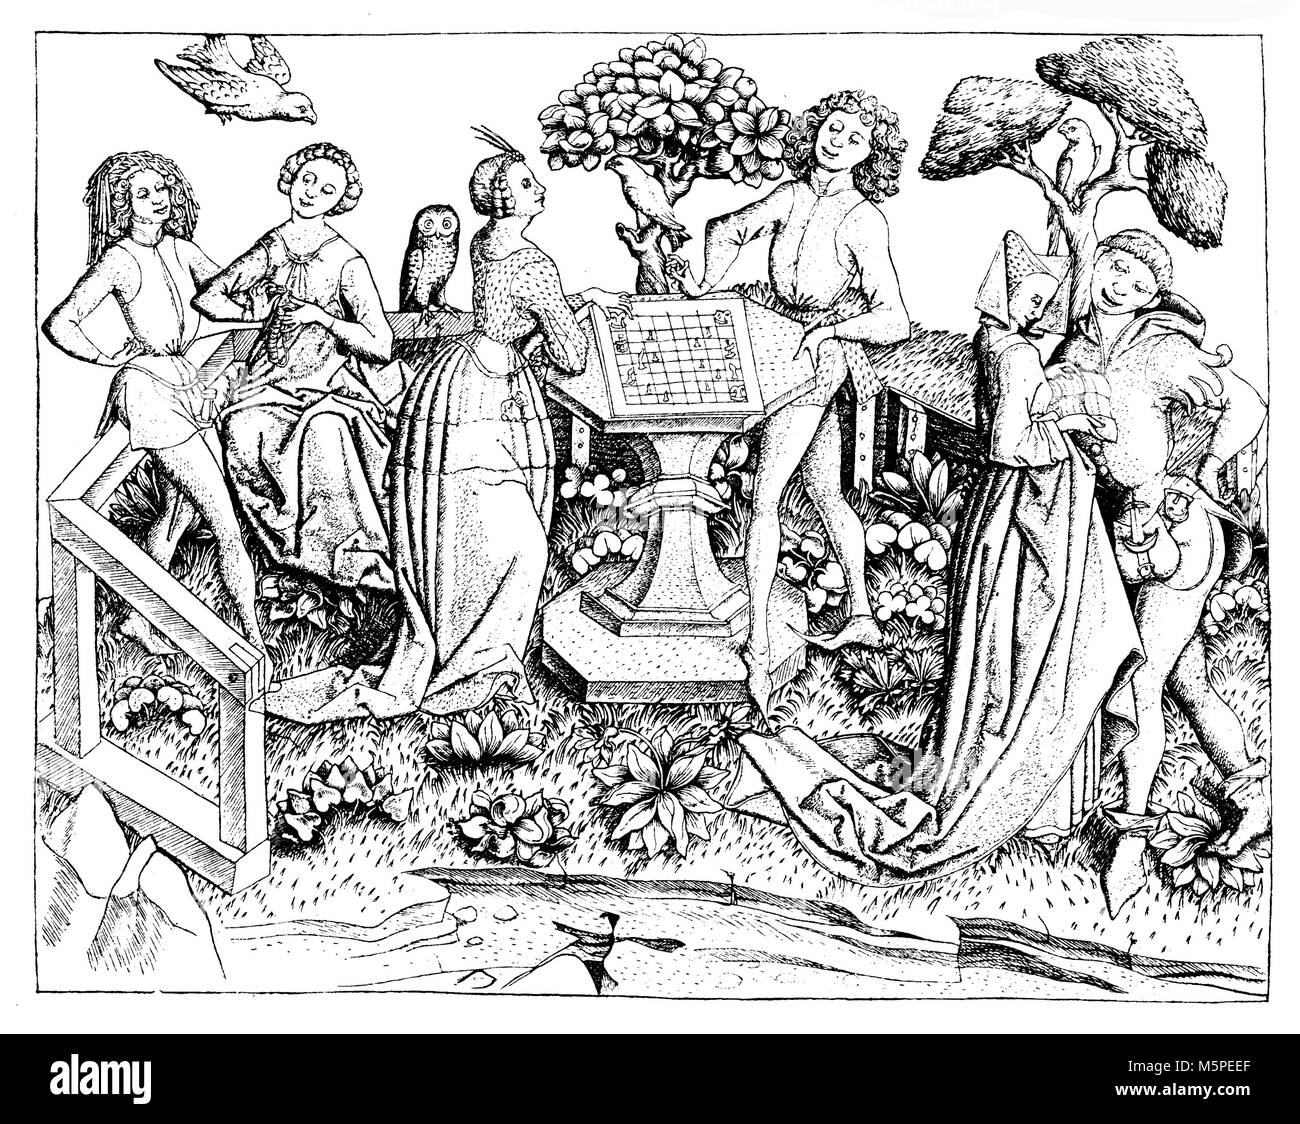 Noble company leisure time in garden courting and  playing chess, XV century engraving - Stock Image